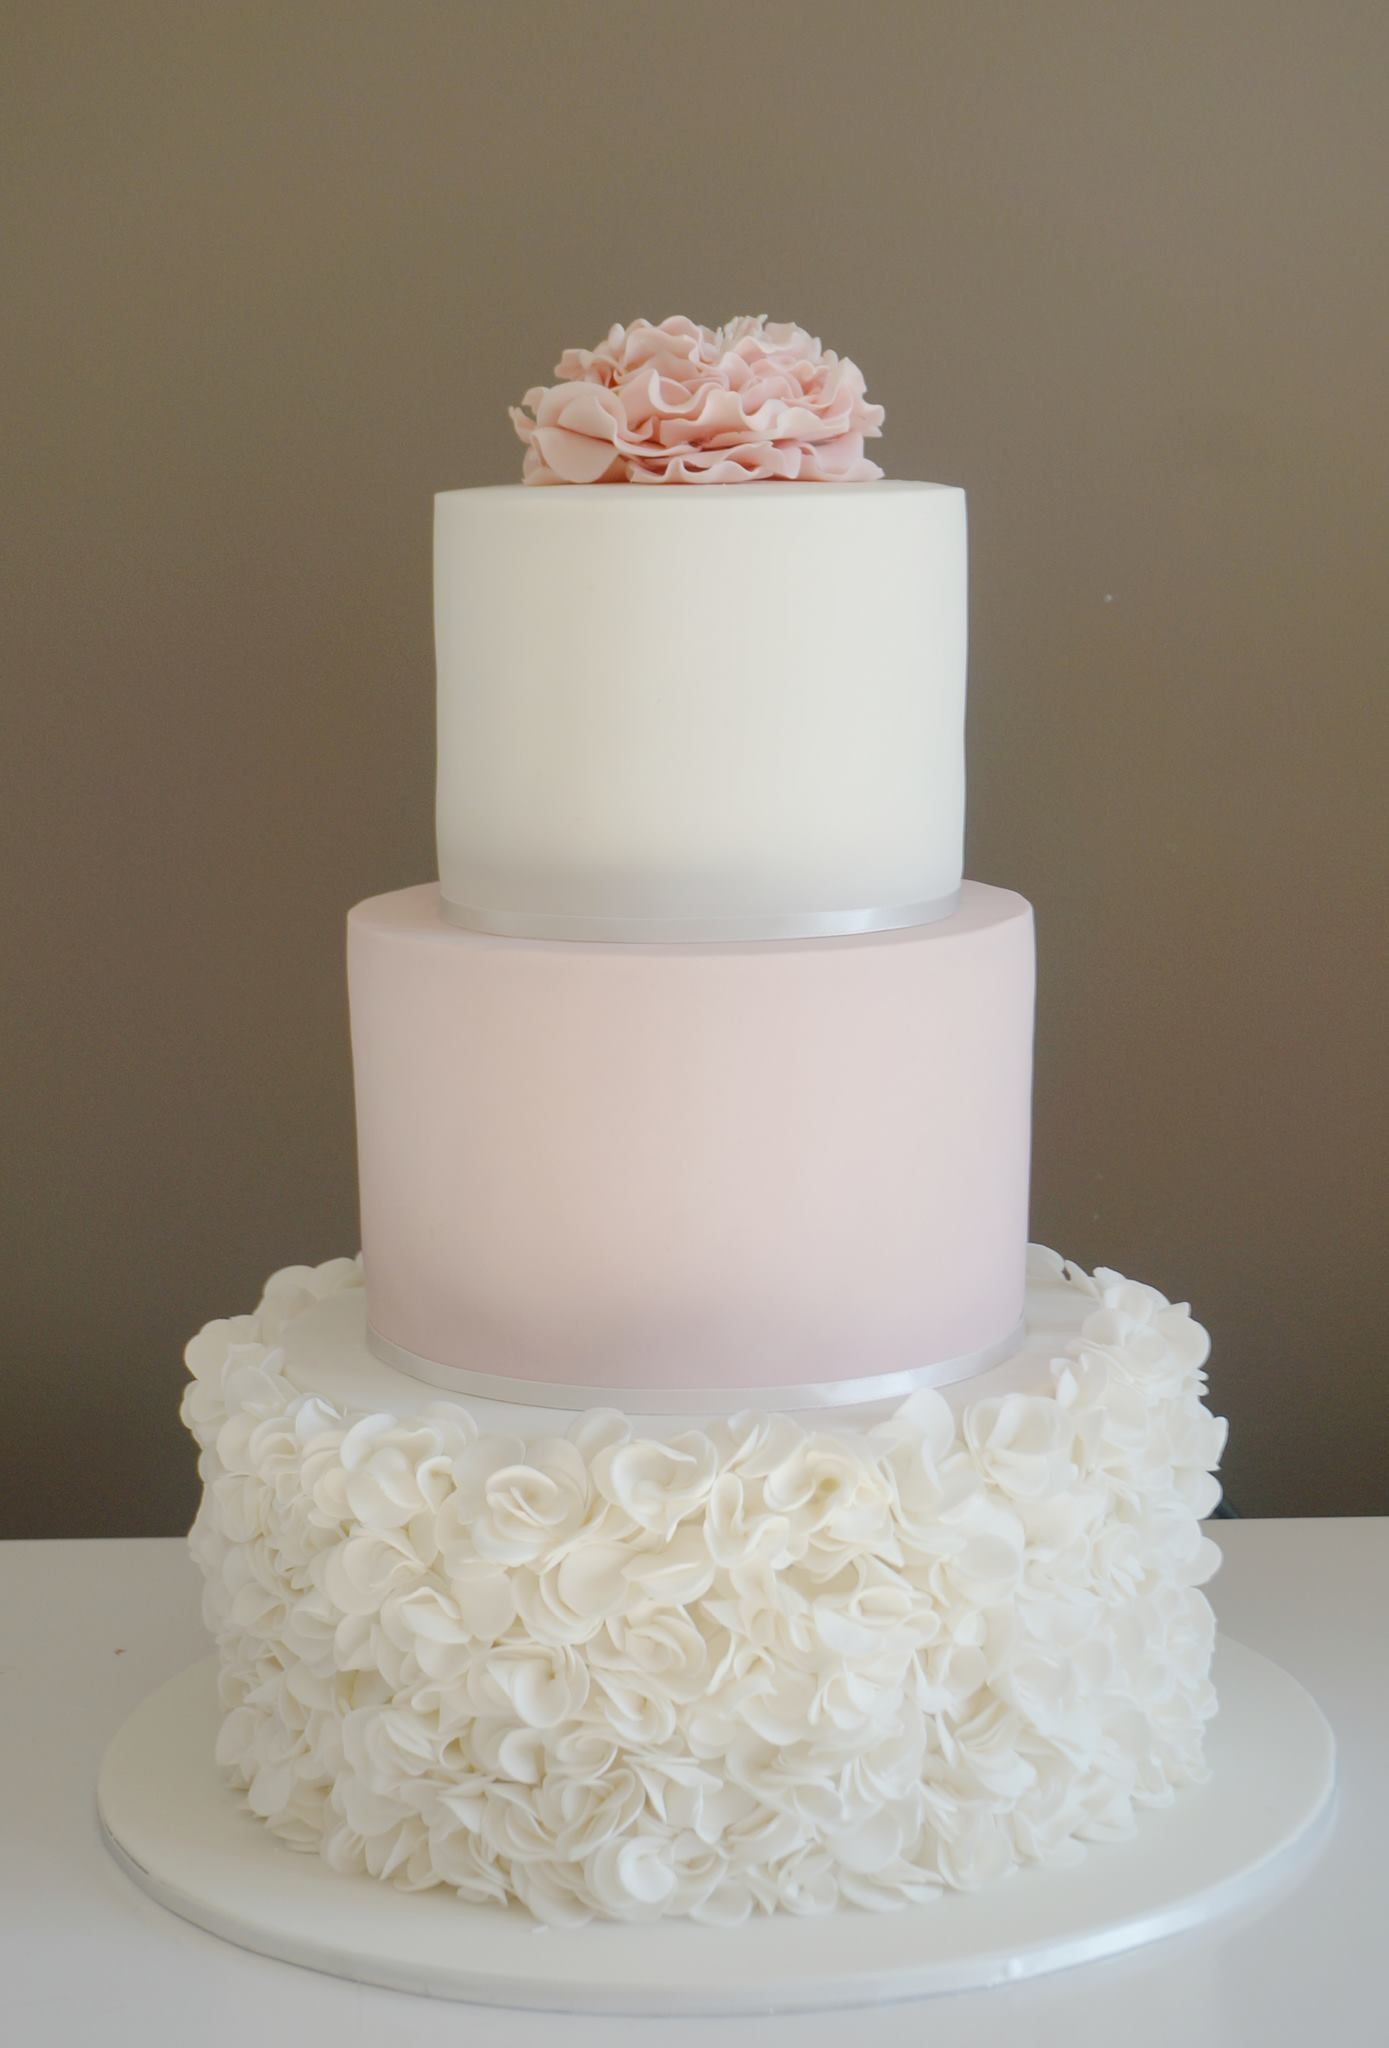 Wedding Cakes Tiered  PINK AND WHITE WEDDING CAKE VERY PRETTY 3 tier cake with